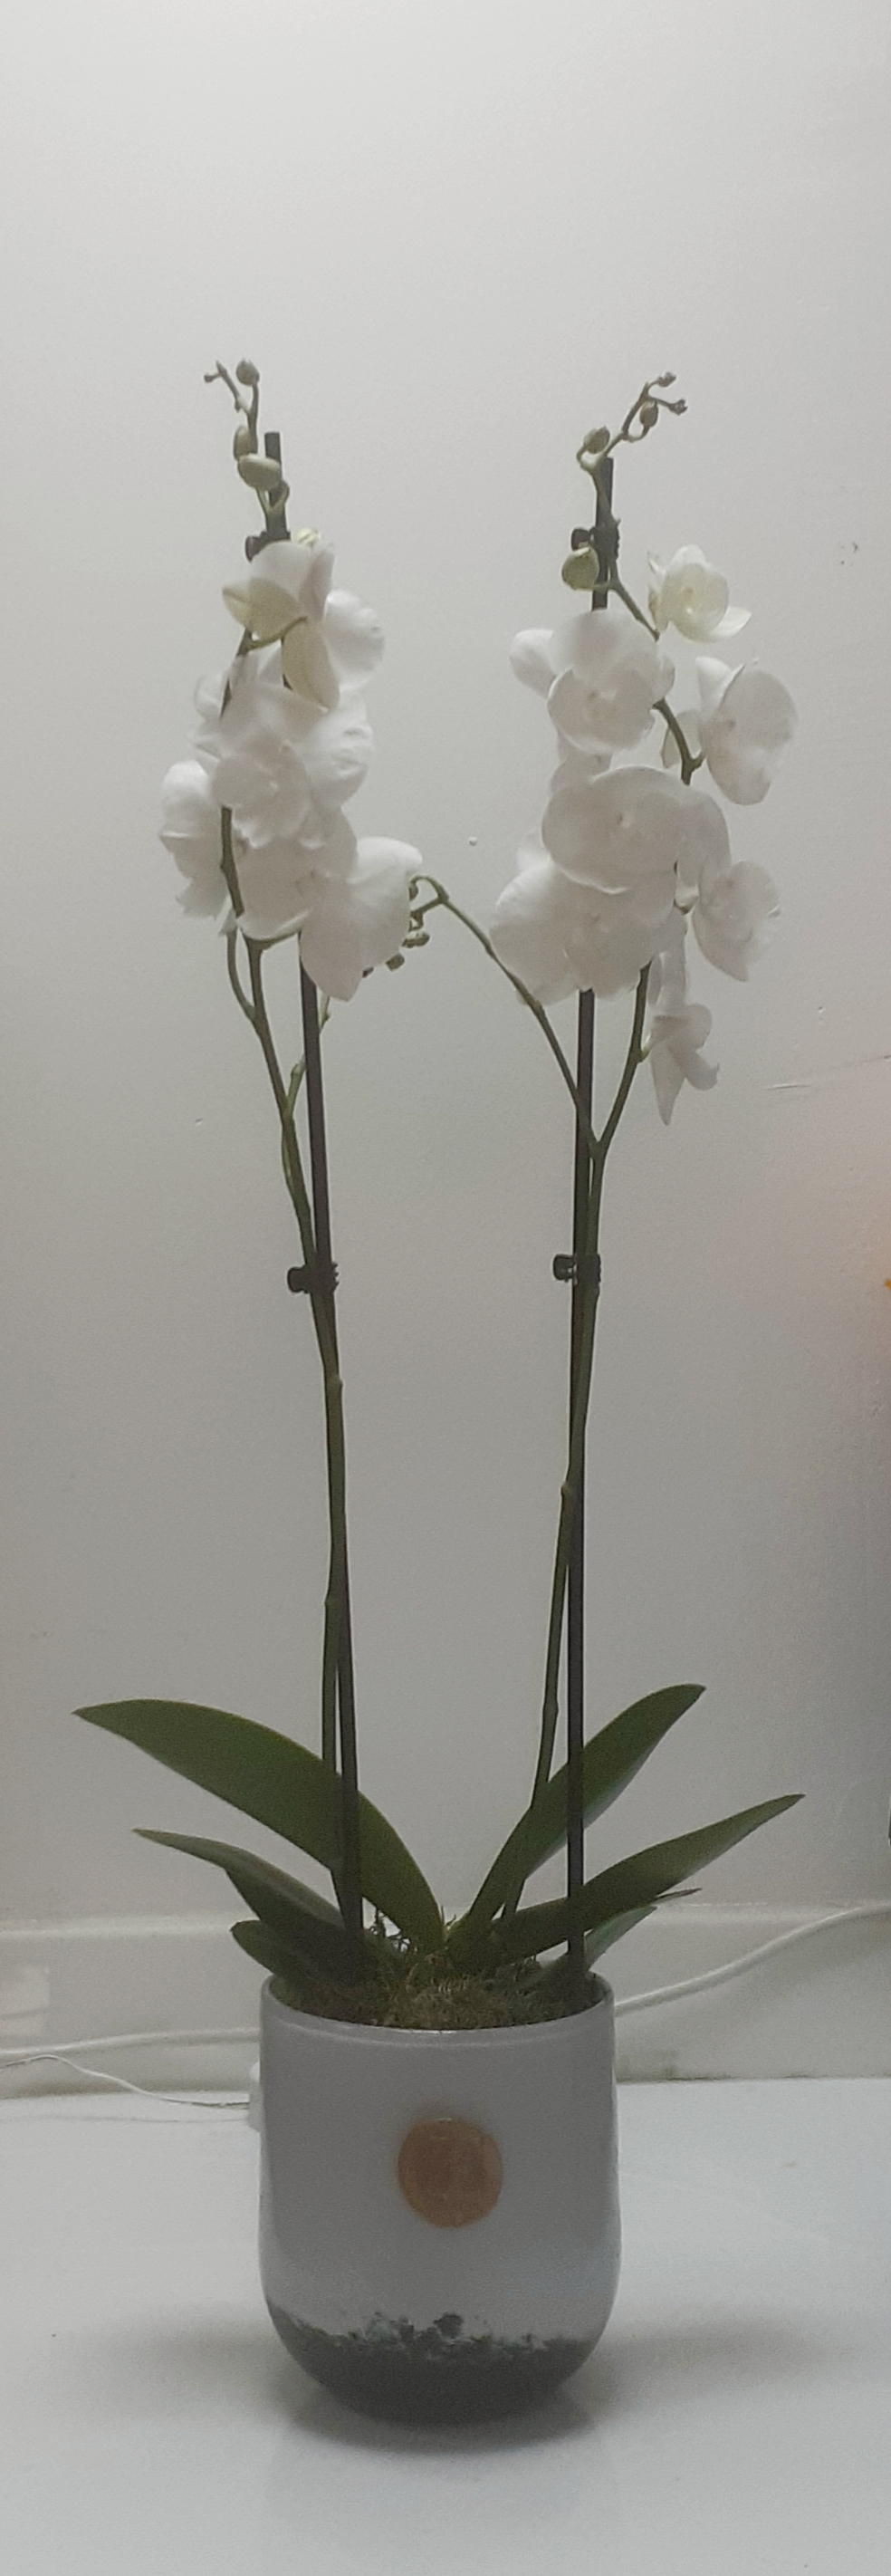 Orchid - White 'Indoor Plants'